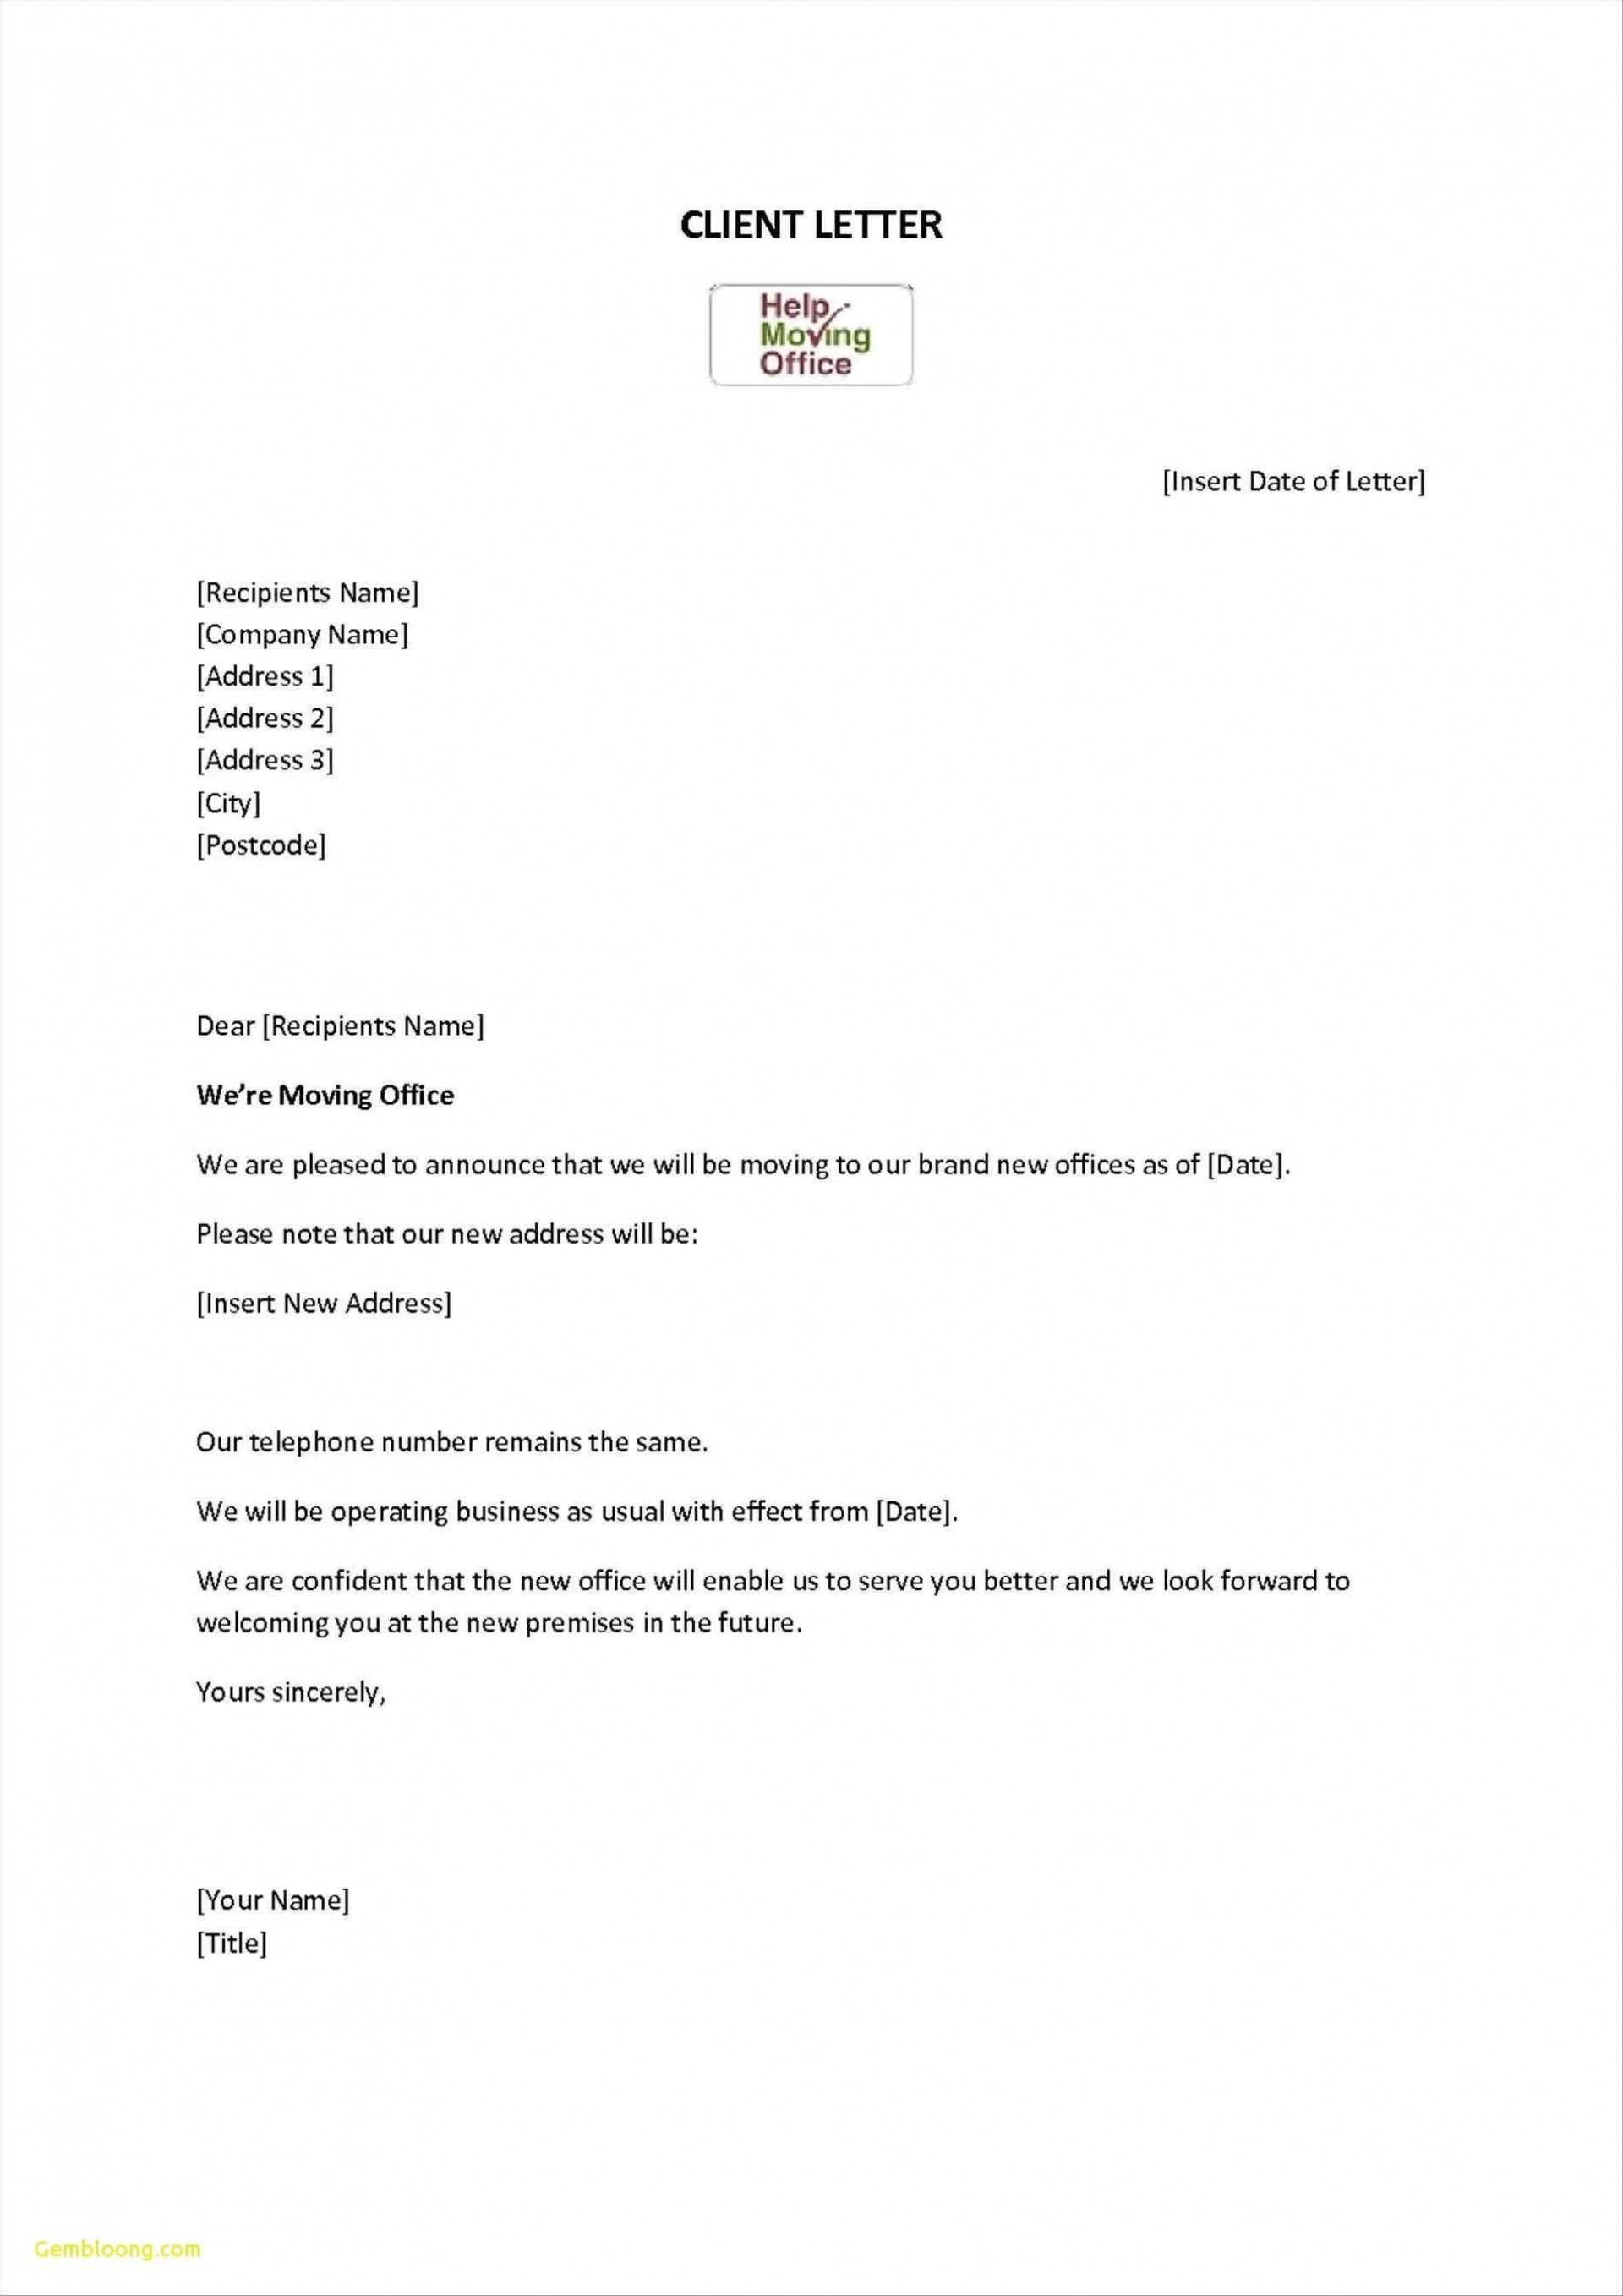 000 Staggering Change Of Addres Letter Template Concept  Templates For Busines Free1920